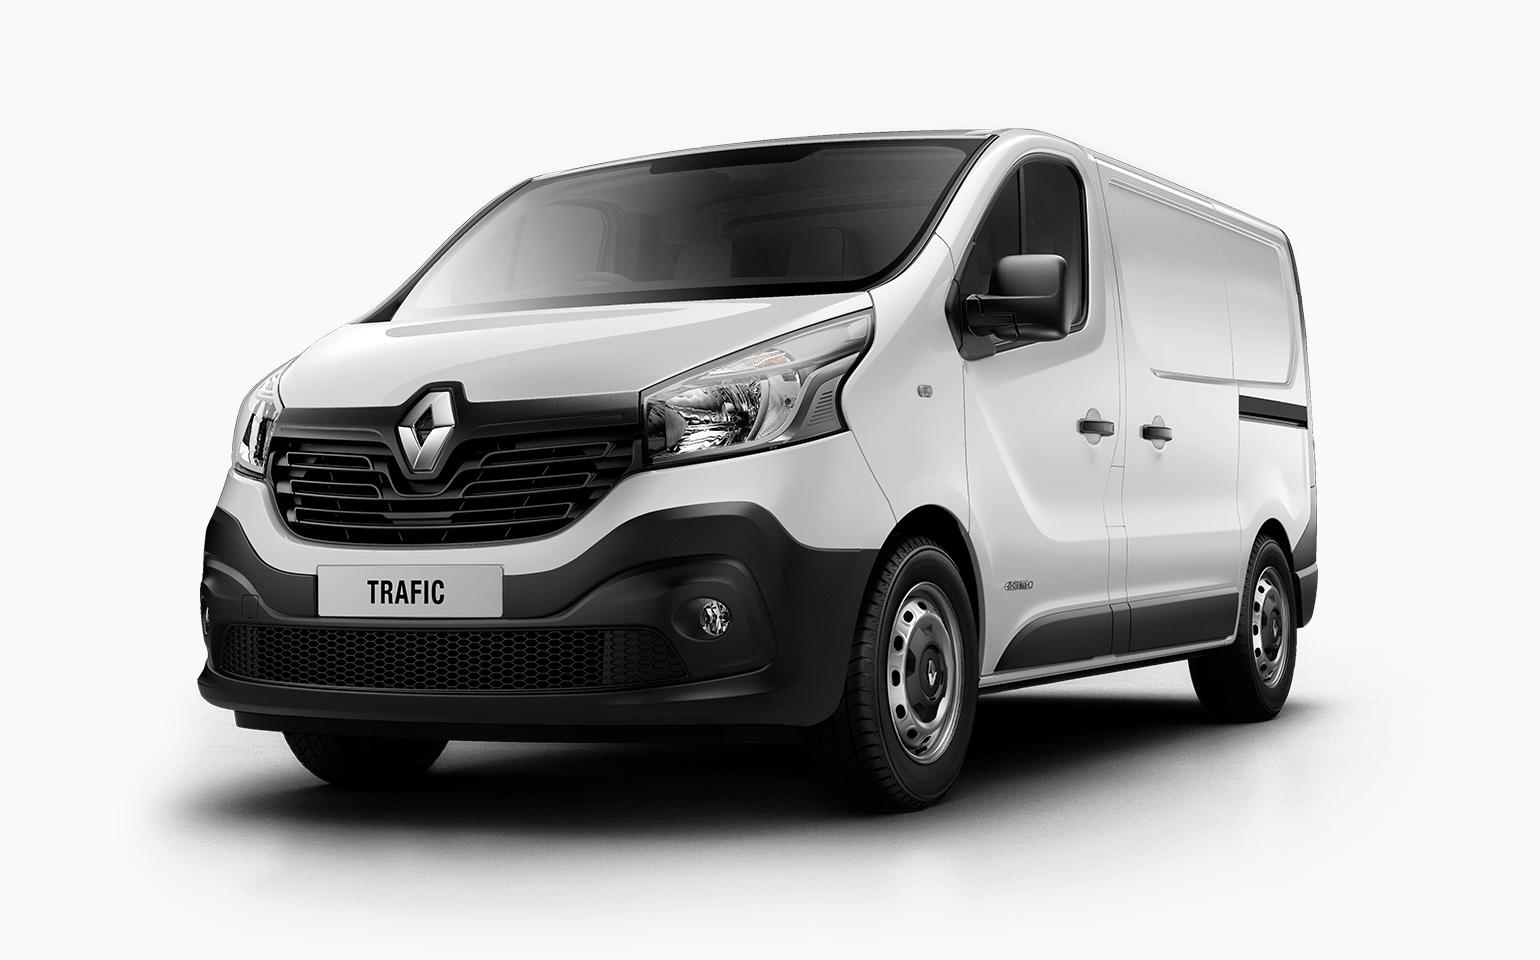 renault trafic x82 2015 reviews. Black Bedroom Furniture Sets. Home Design Ideas